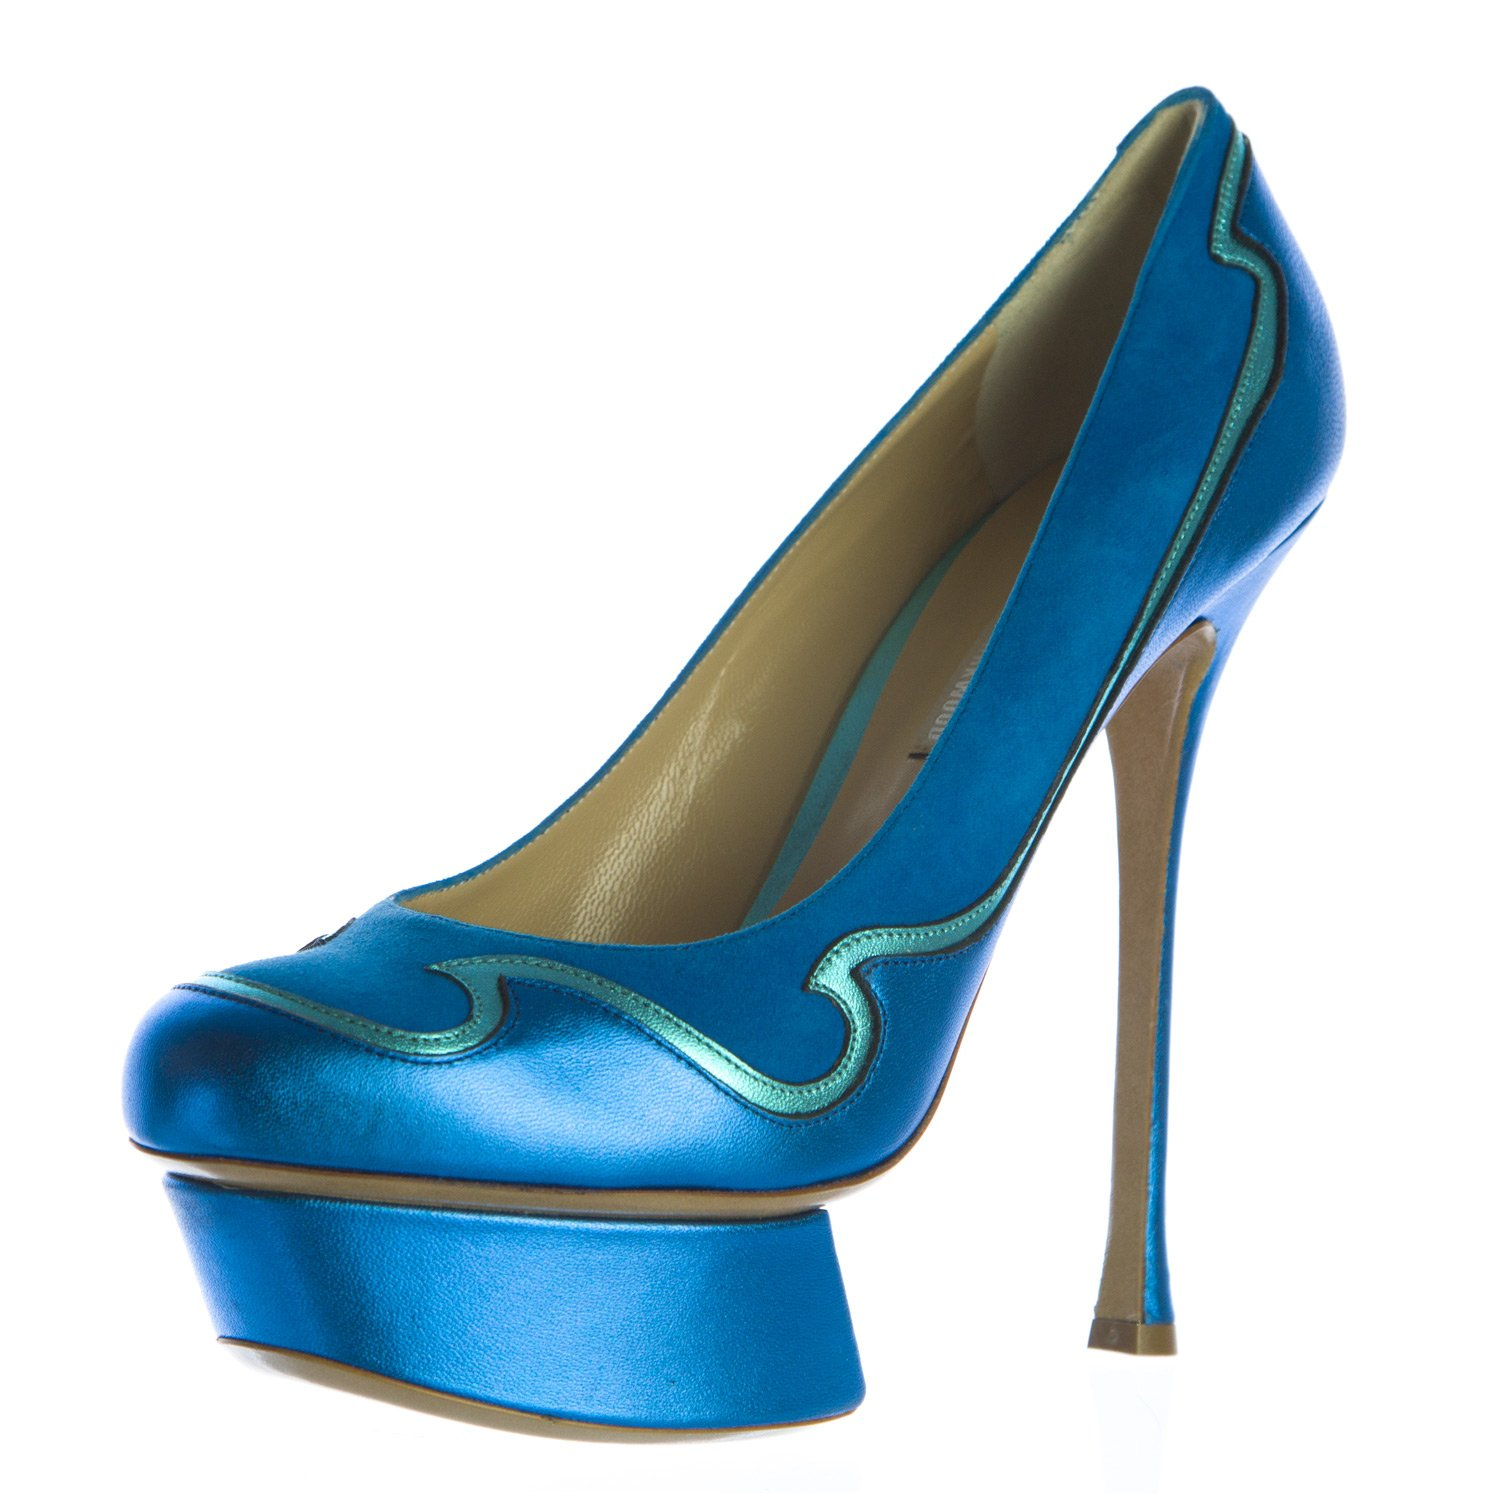 Nicholas Kirkwood Leather Platform Pumps 11 Ocean Blue